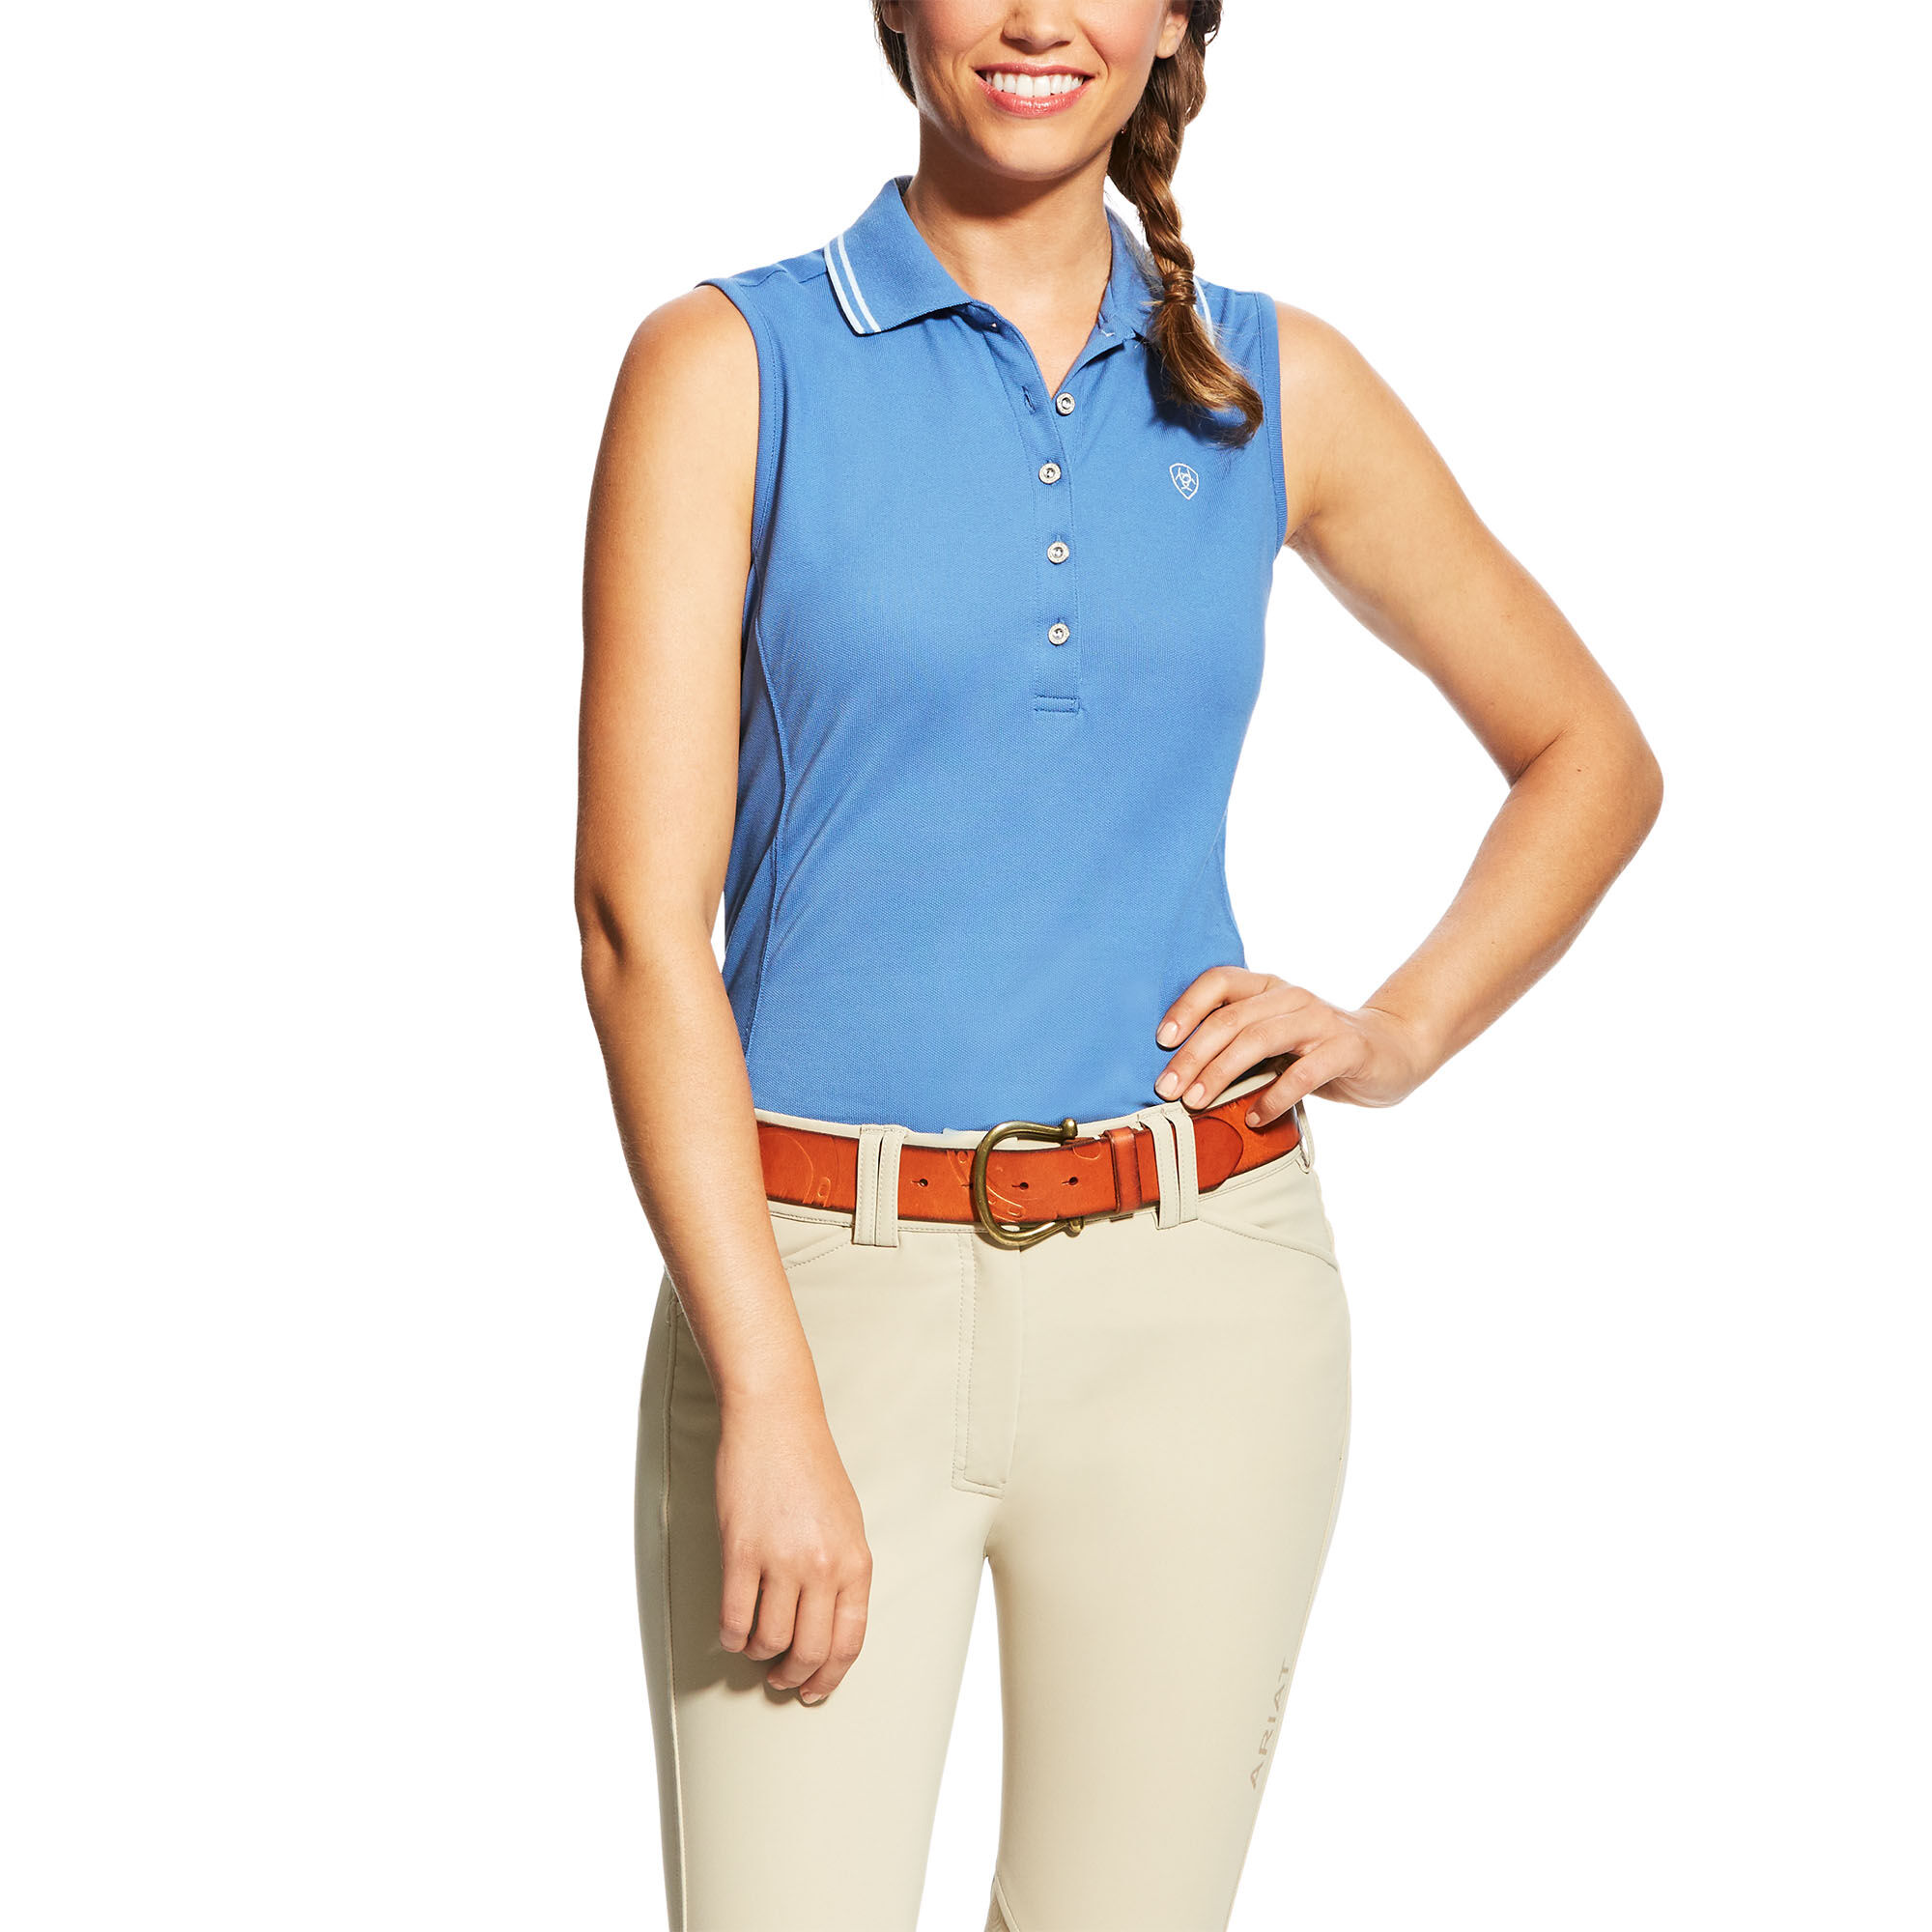 ee2e174bcfc756 Sleeveless Polo Shirts For Ladies - BCD Tofu House